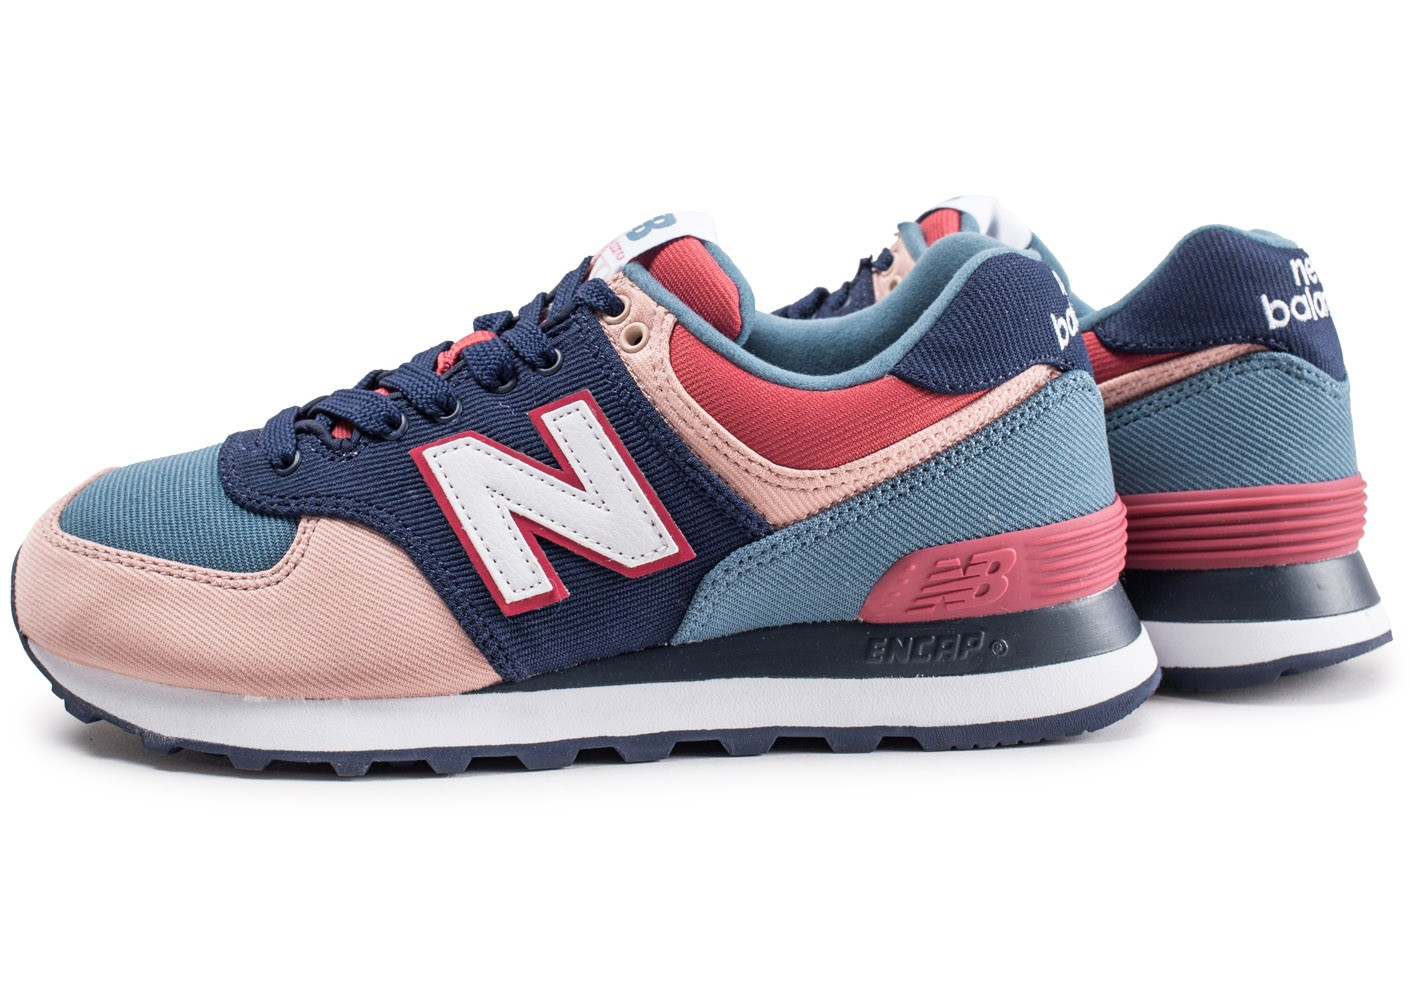 Wl574ina Femme New Et Balance Bleue Chaussures Baskets Rose SxrX5rUq